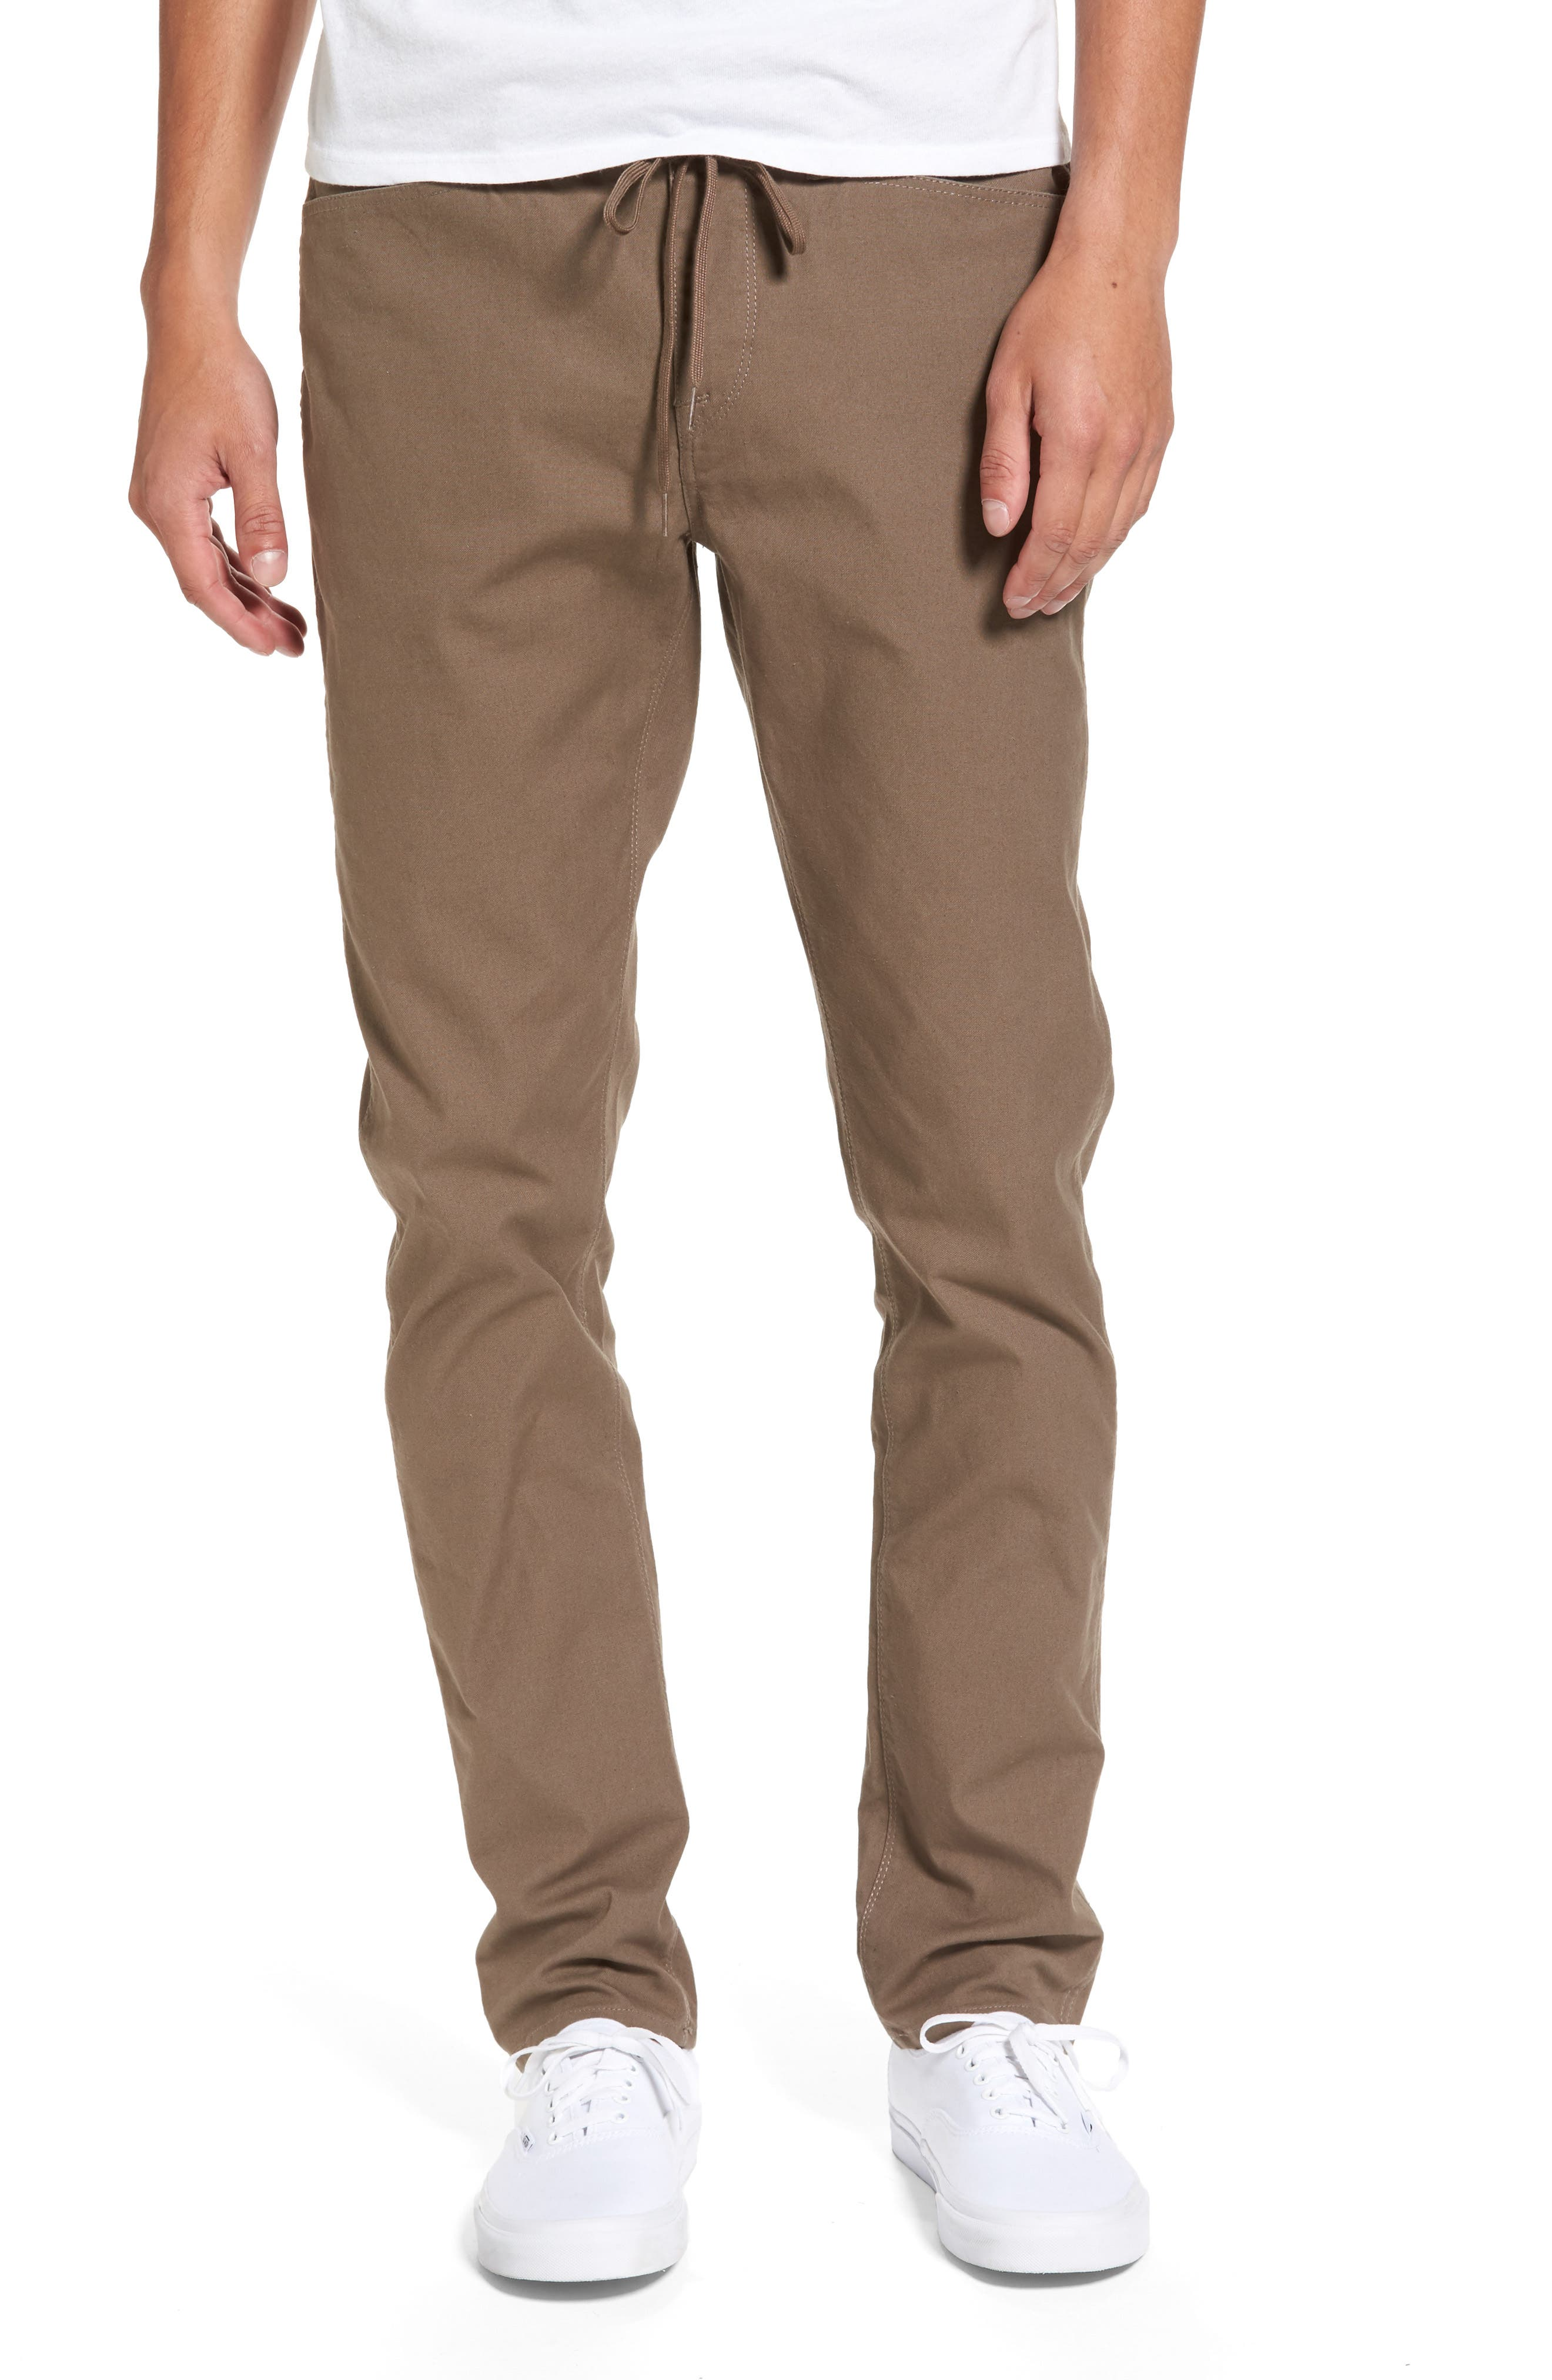 'VSM Gritter' Tapered Chinos,                             Main thumbnail 1, color,                             250